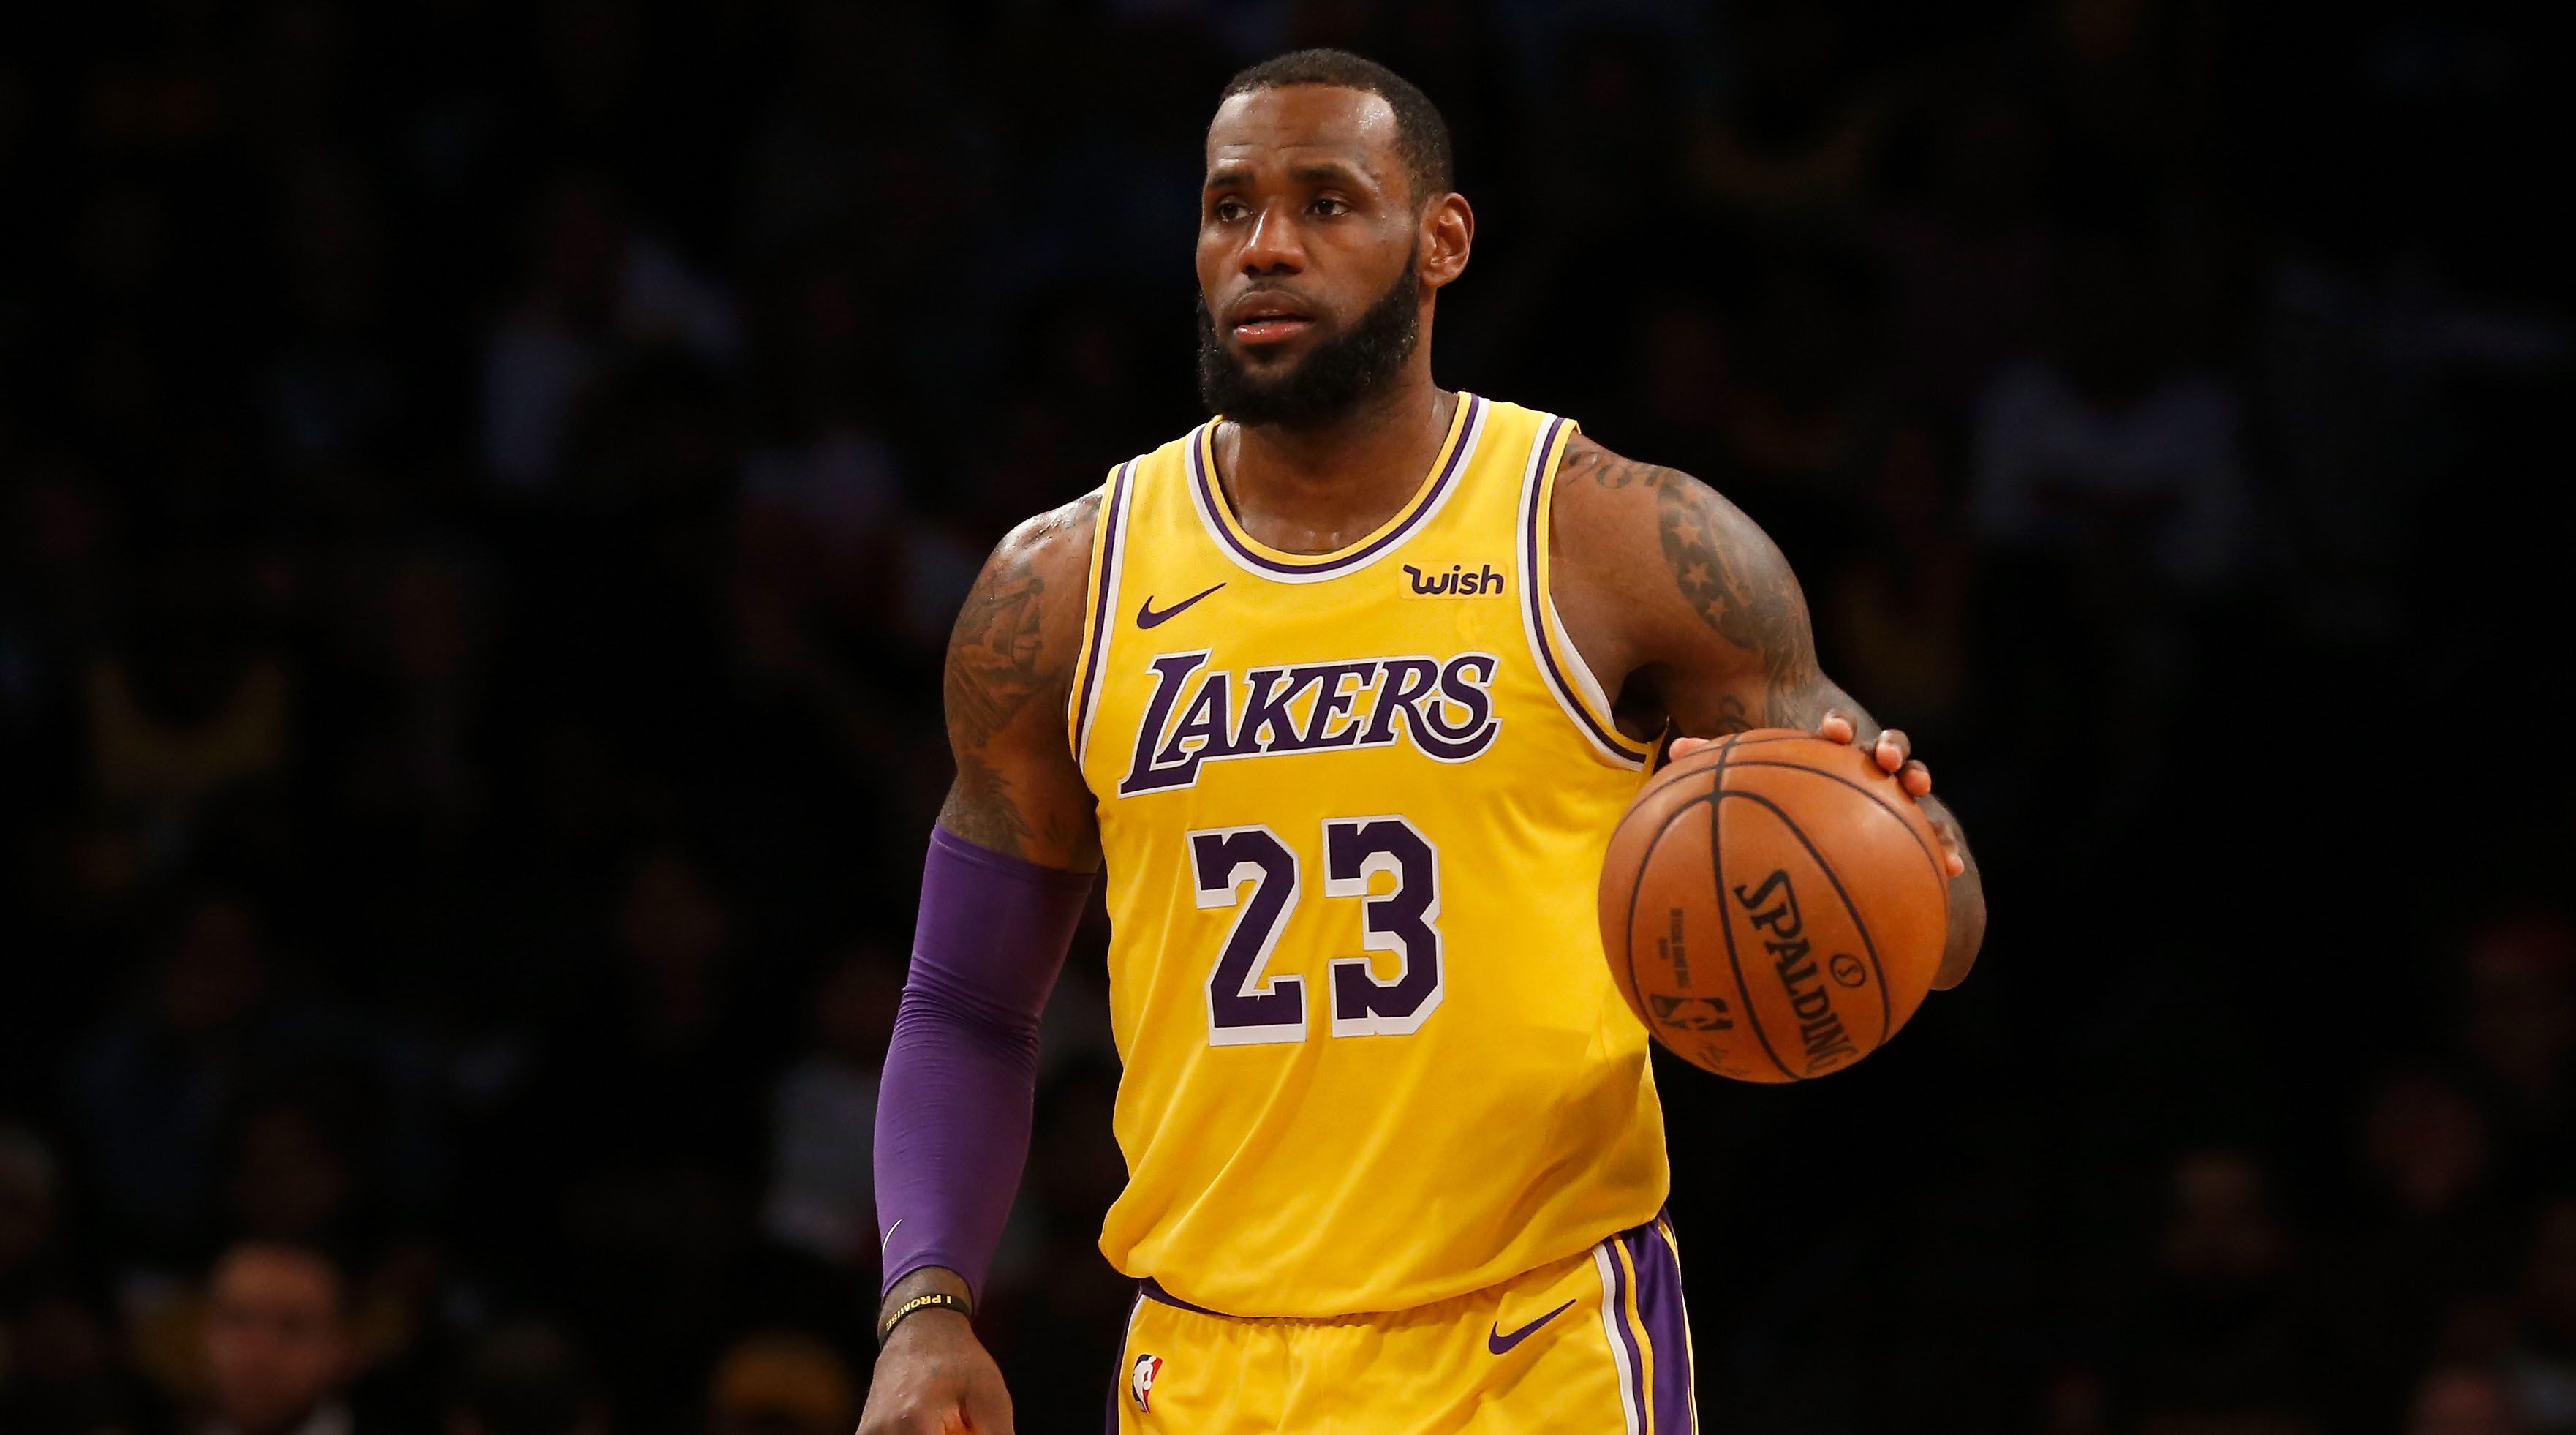 LeBron James, Lonzo Ball lead Lakers in All-Star voting